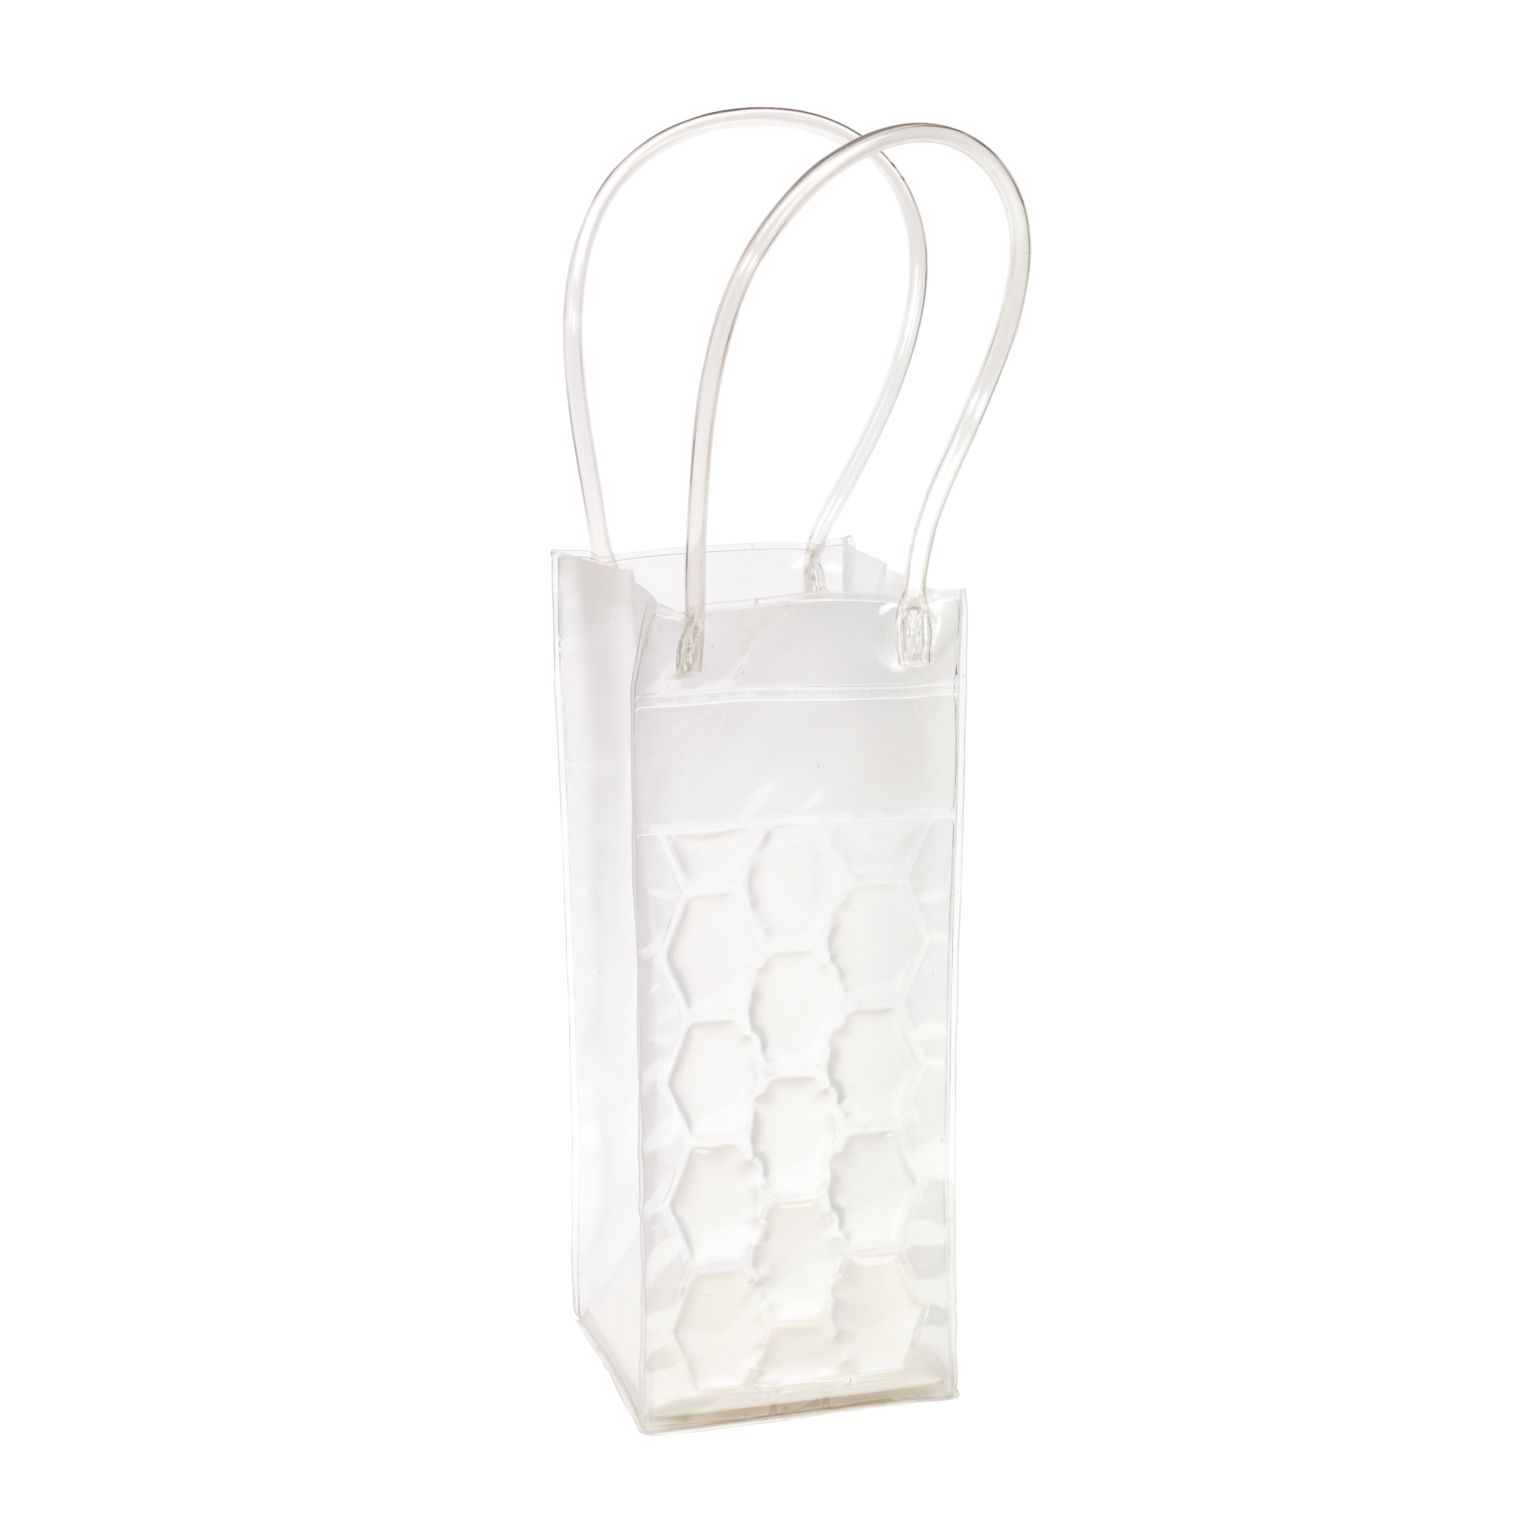 Sac isotherme ICE CUBE